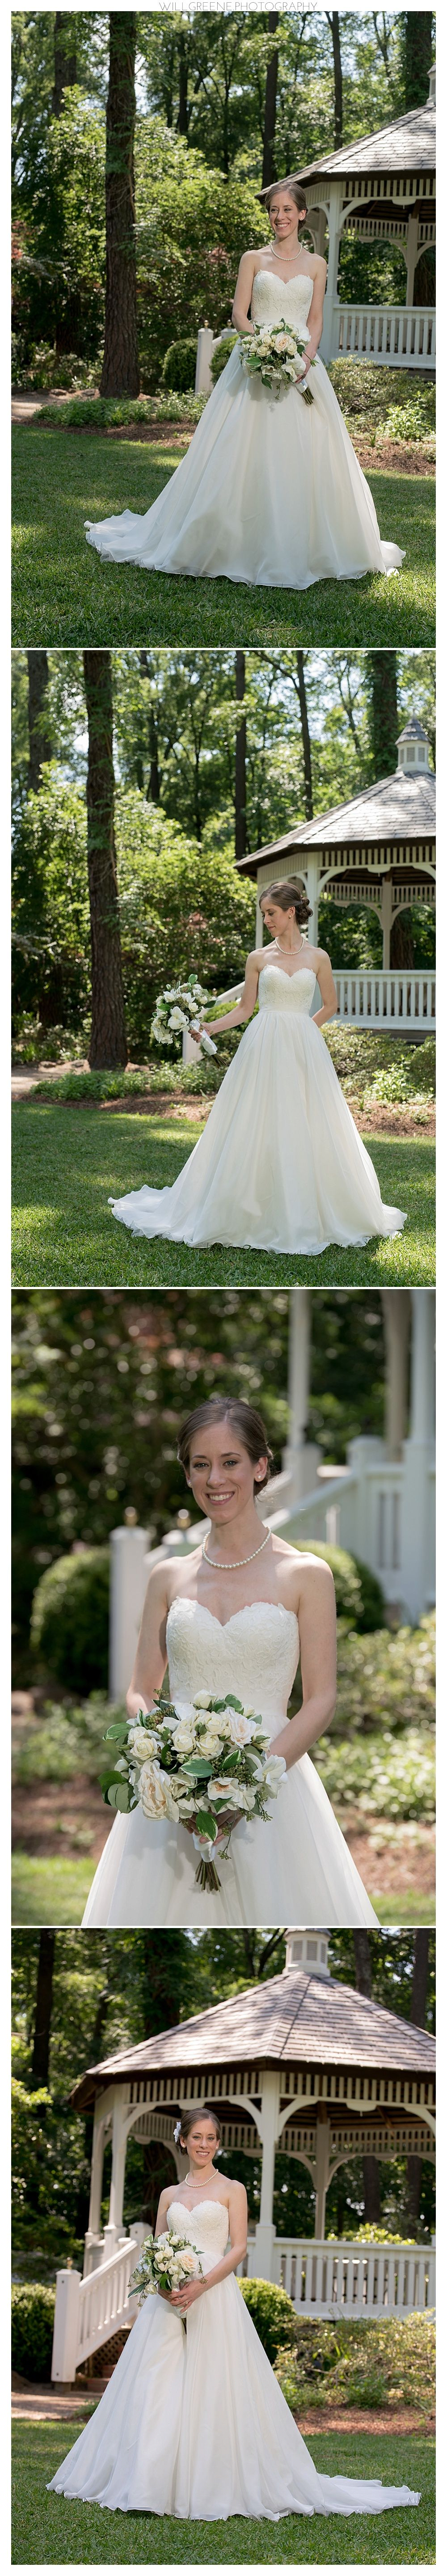 Erin's Cape Fear Botanical Garden bridal session